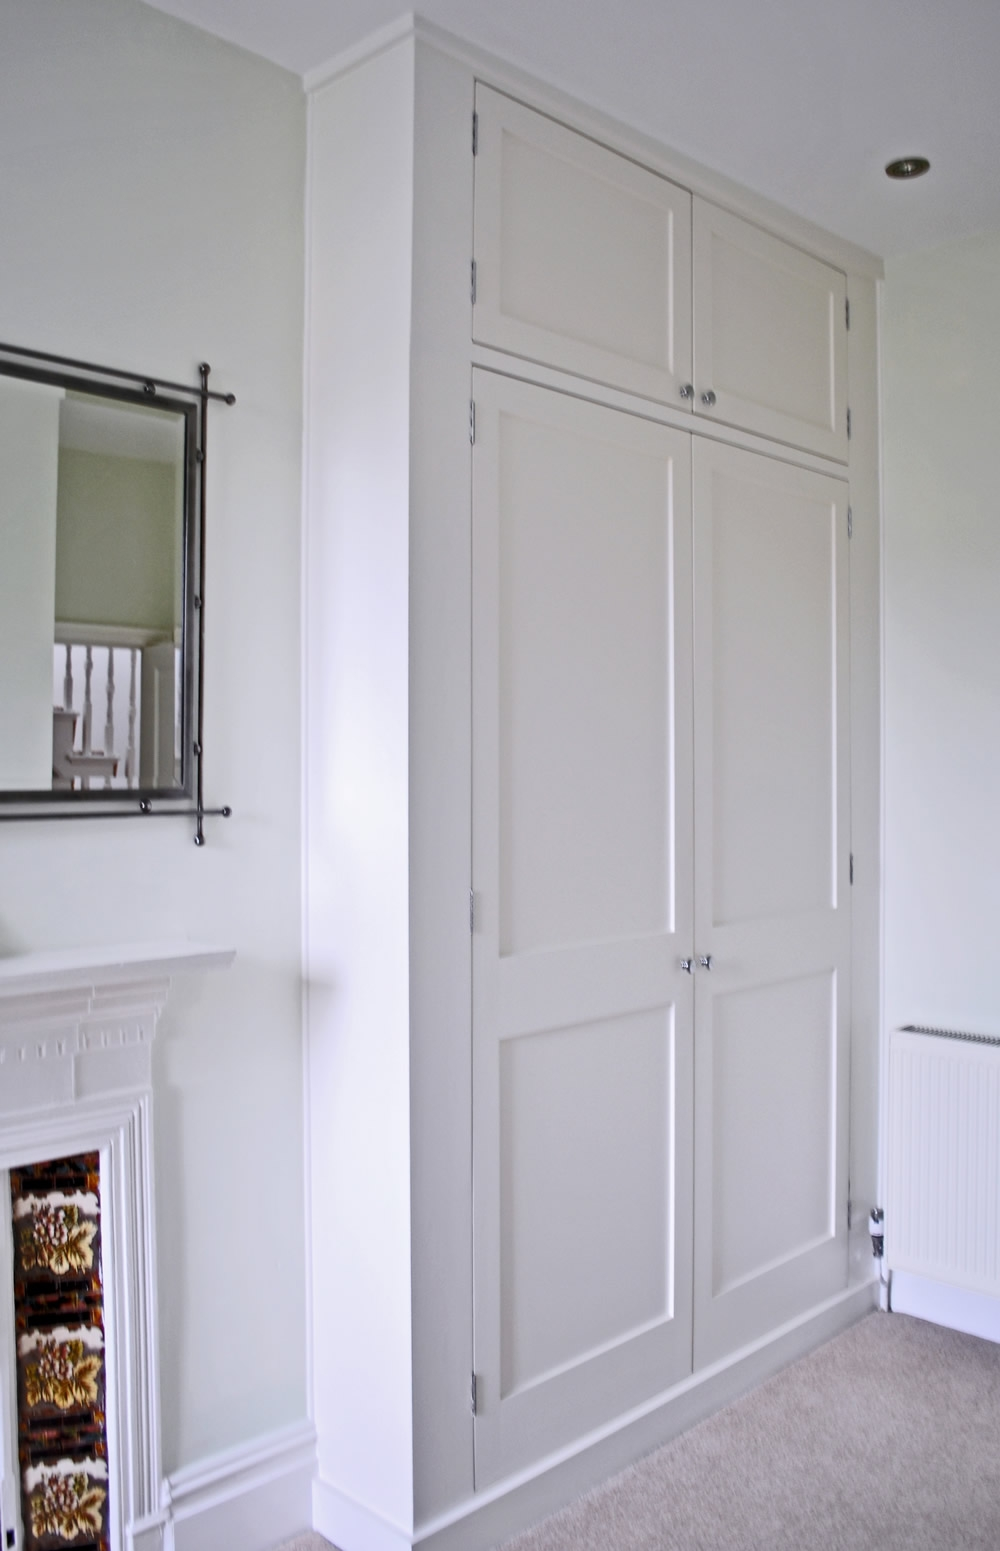 Bespoke Fitted Wardrobes And Cupboards London Alcove Company Intended For Bespoke Cupboards (Image 5 of 15)